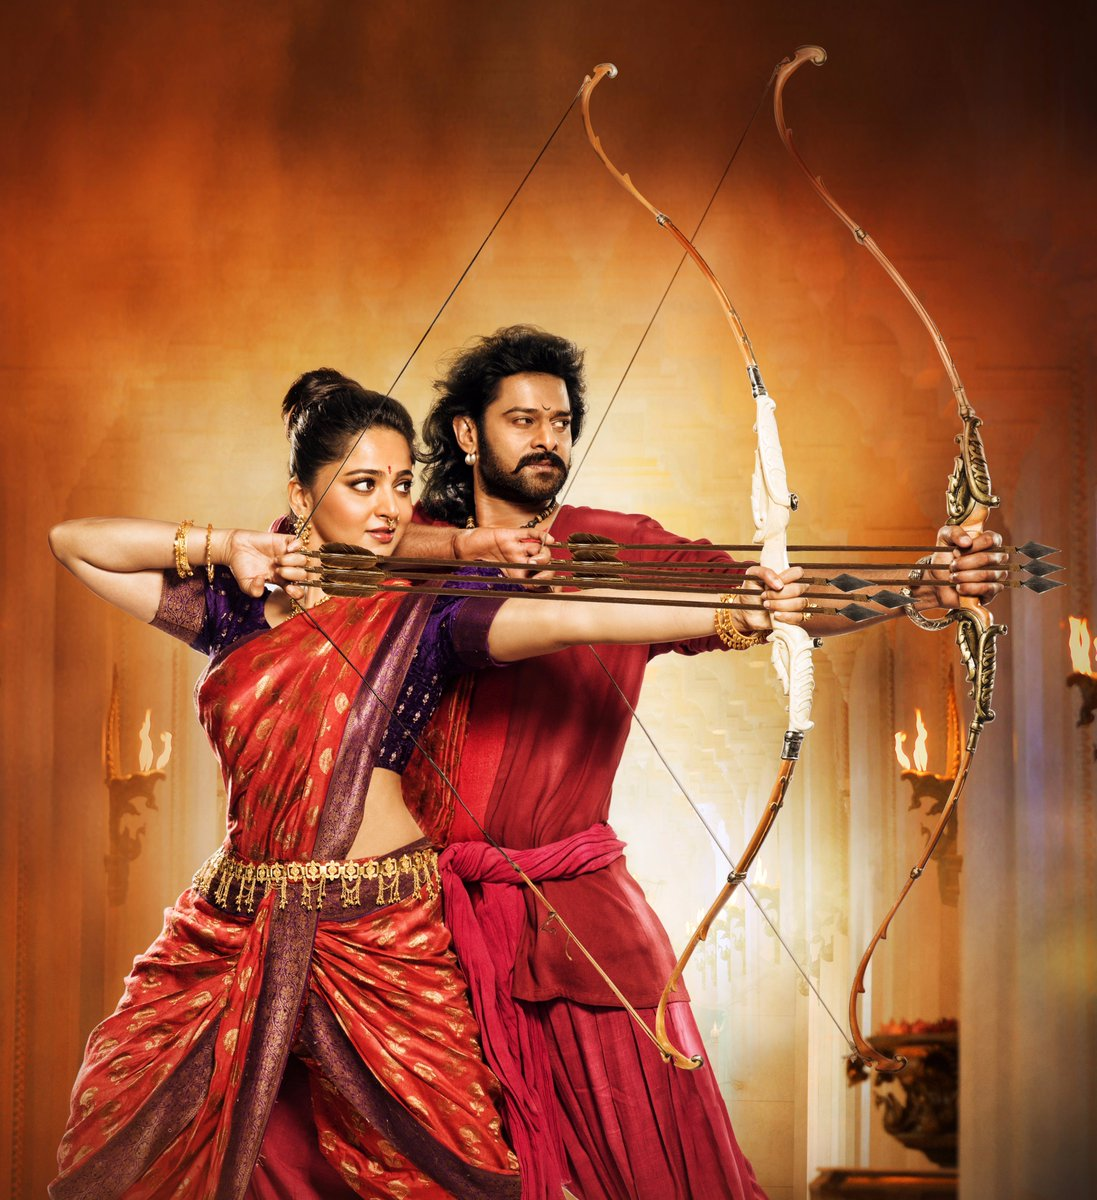 #Baahubali2 keeps breaking records!Reply to us with your fav scene from the movie.#1000crNettBB2InIND